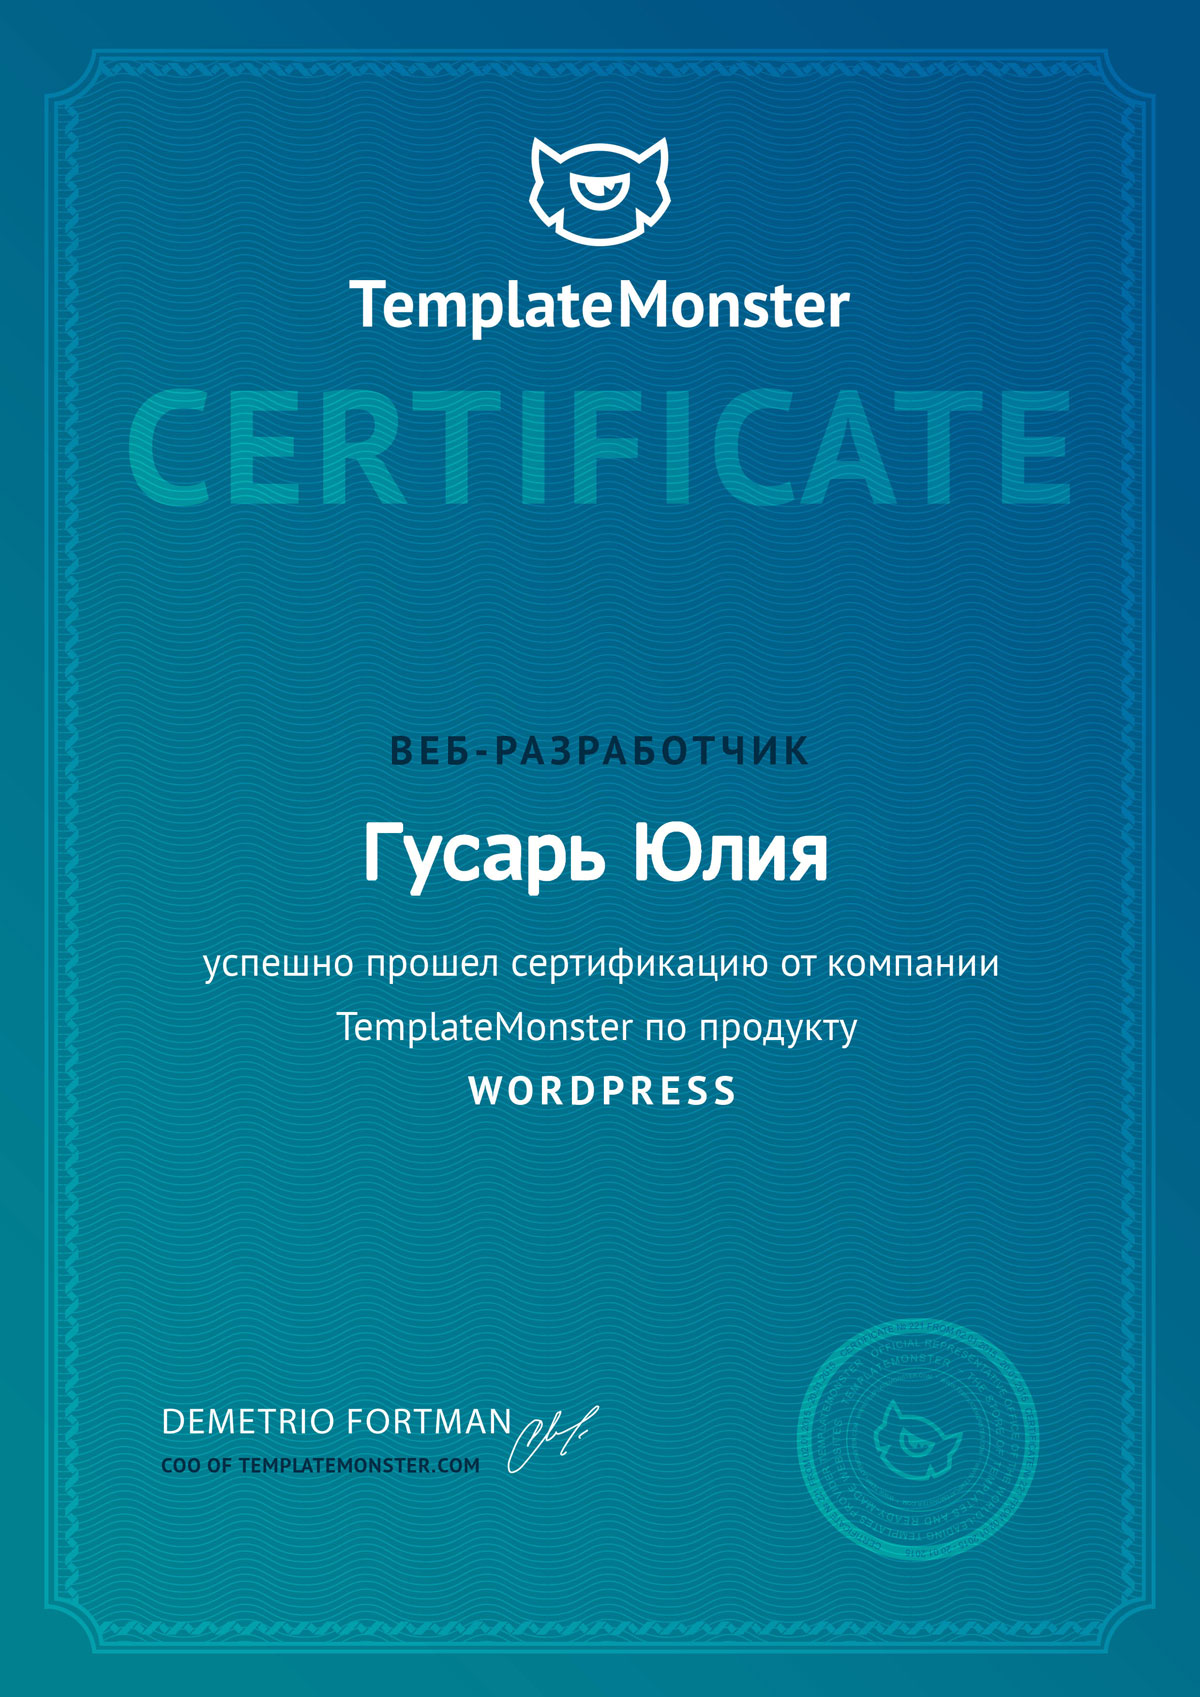 Мой сертификат TemplateMonster